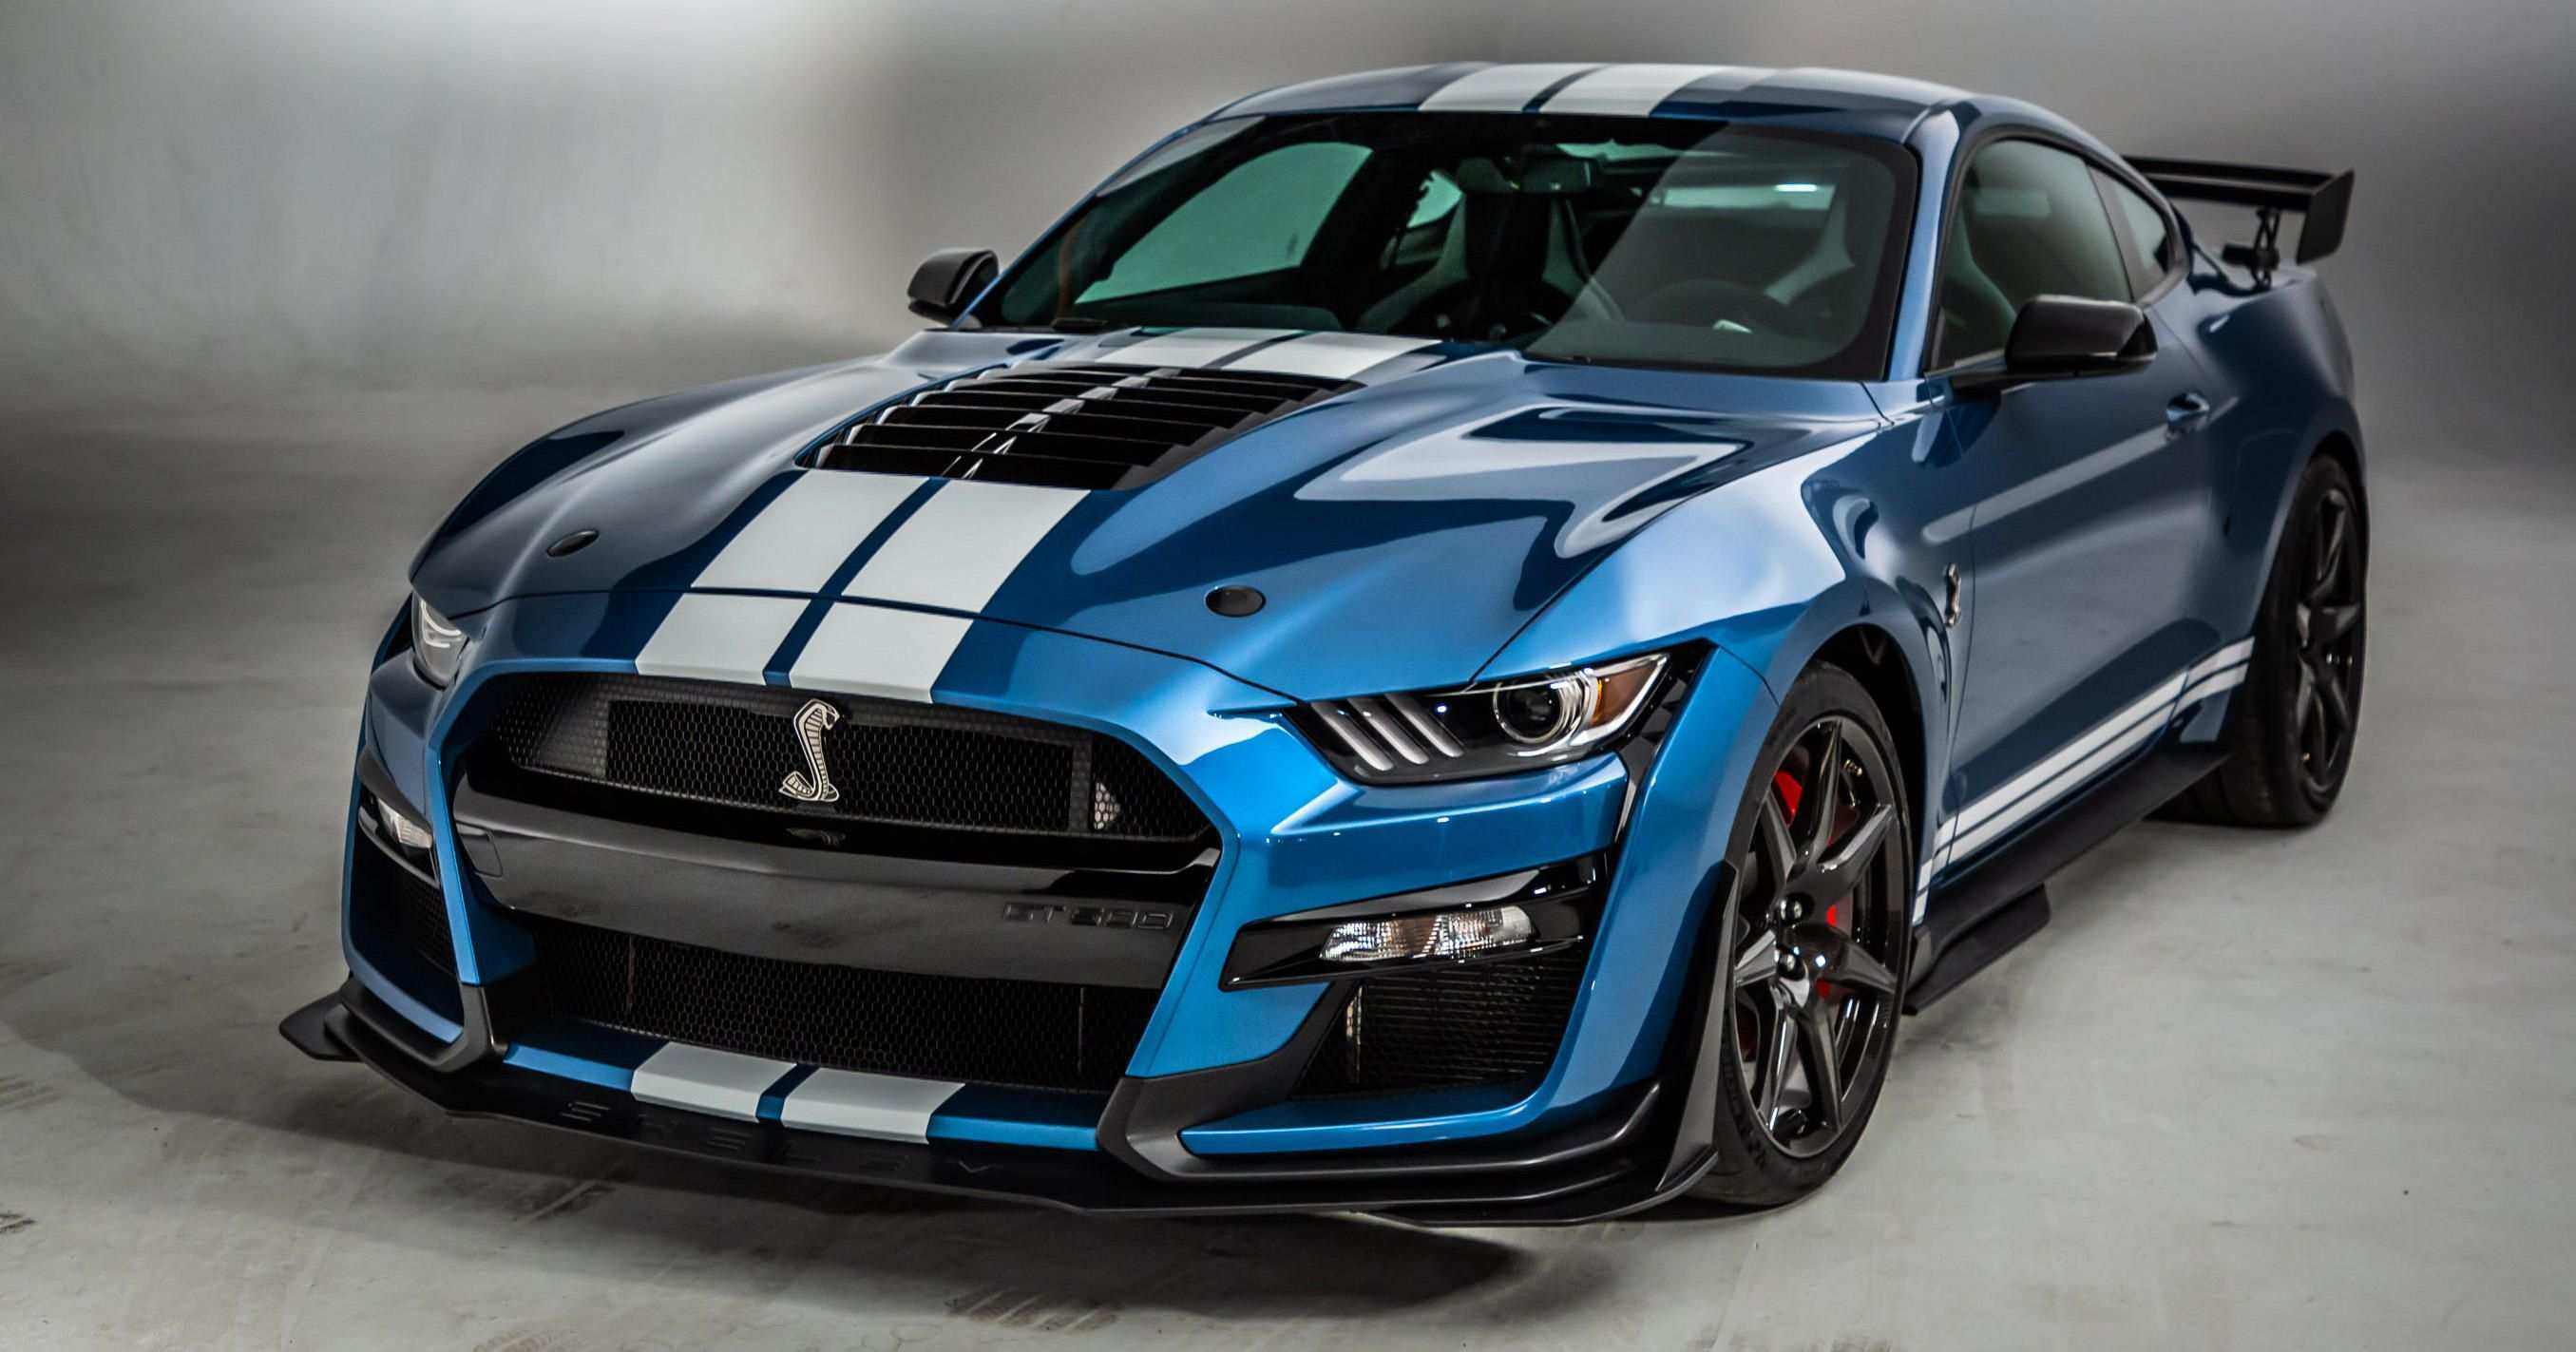 54 A 2020 Ford Mustang Gt Price And Review